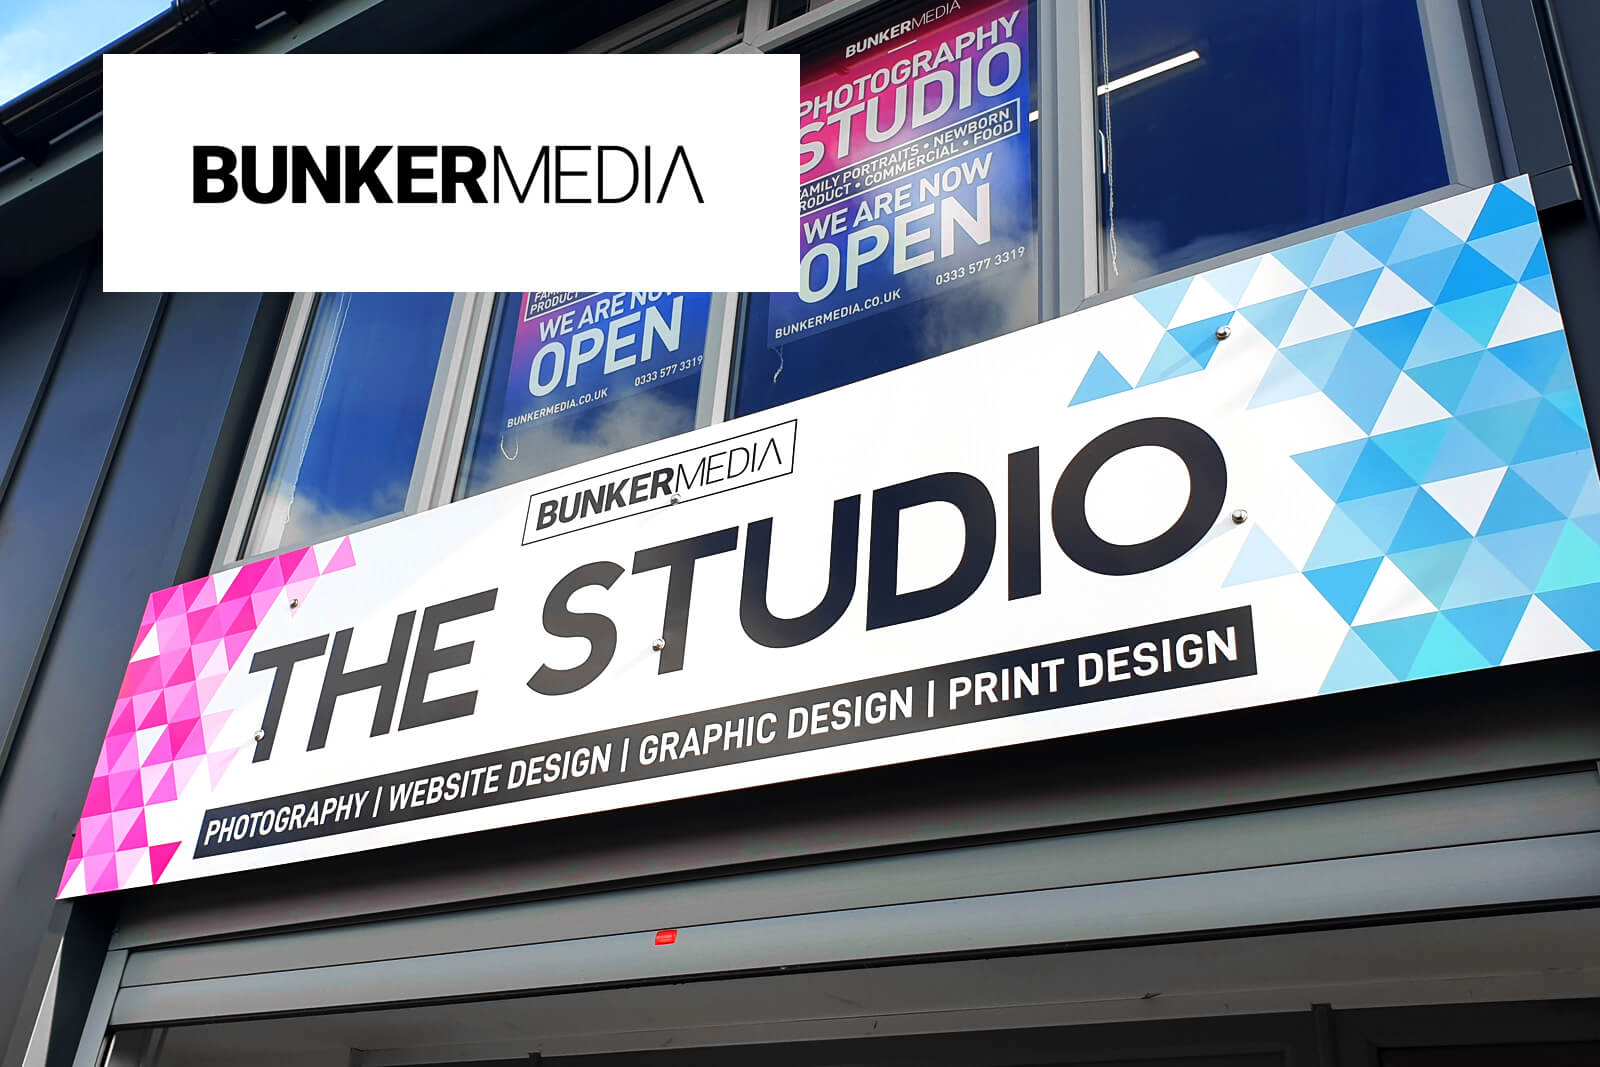 Photography studio in Dawlish, Devon. Teignmouth Airshow sponsor.